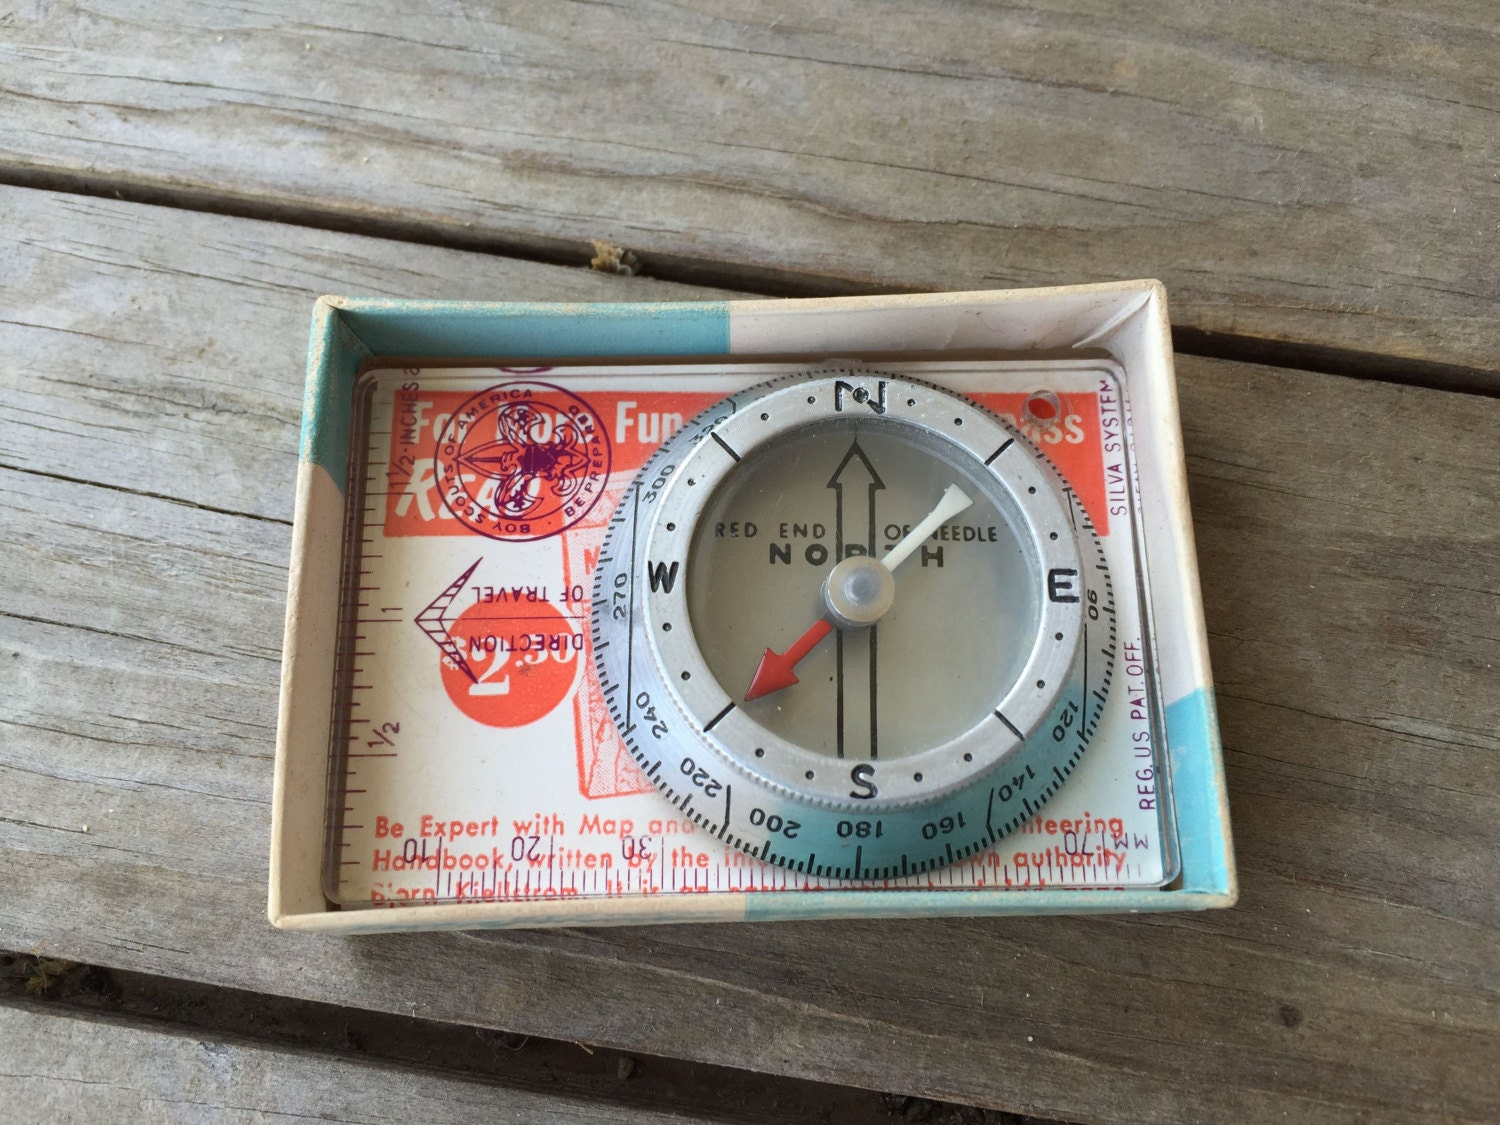 Vintage Boy Scout Compass 1950s Pathfinder Camping Gear